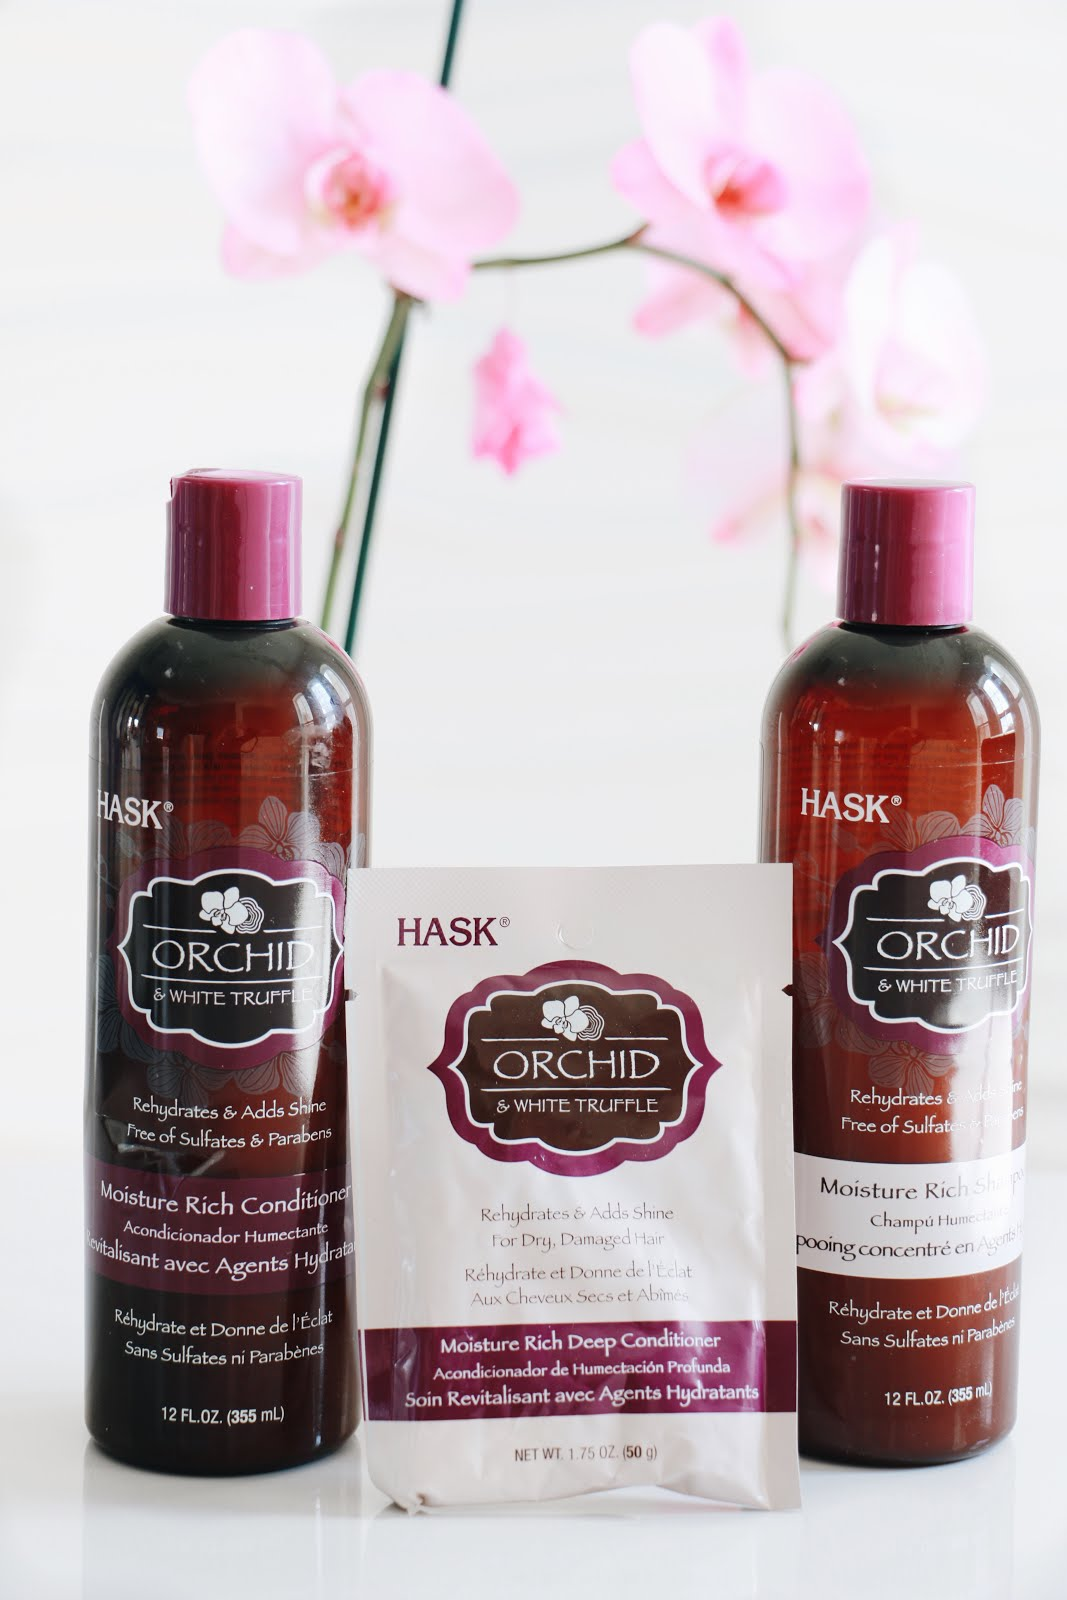 HASK-Orchid &-White-Truffle-Moisture-Rich-Collection-Vivi-Brizuela-PinkOrchidMakeup